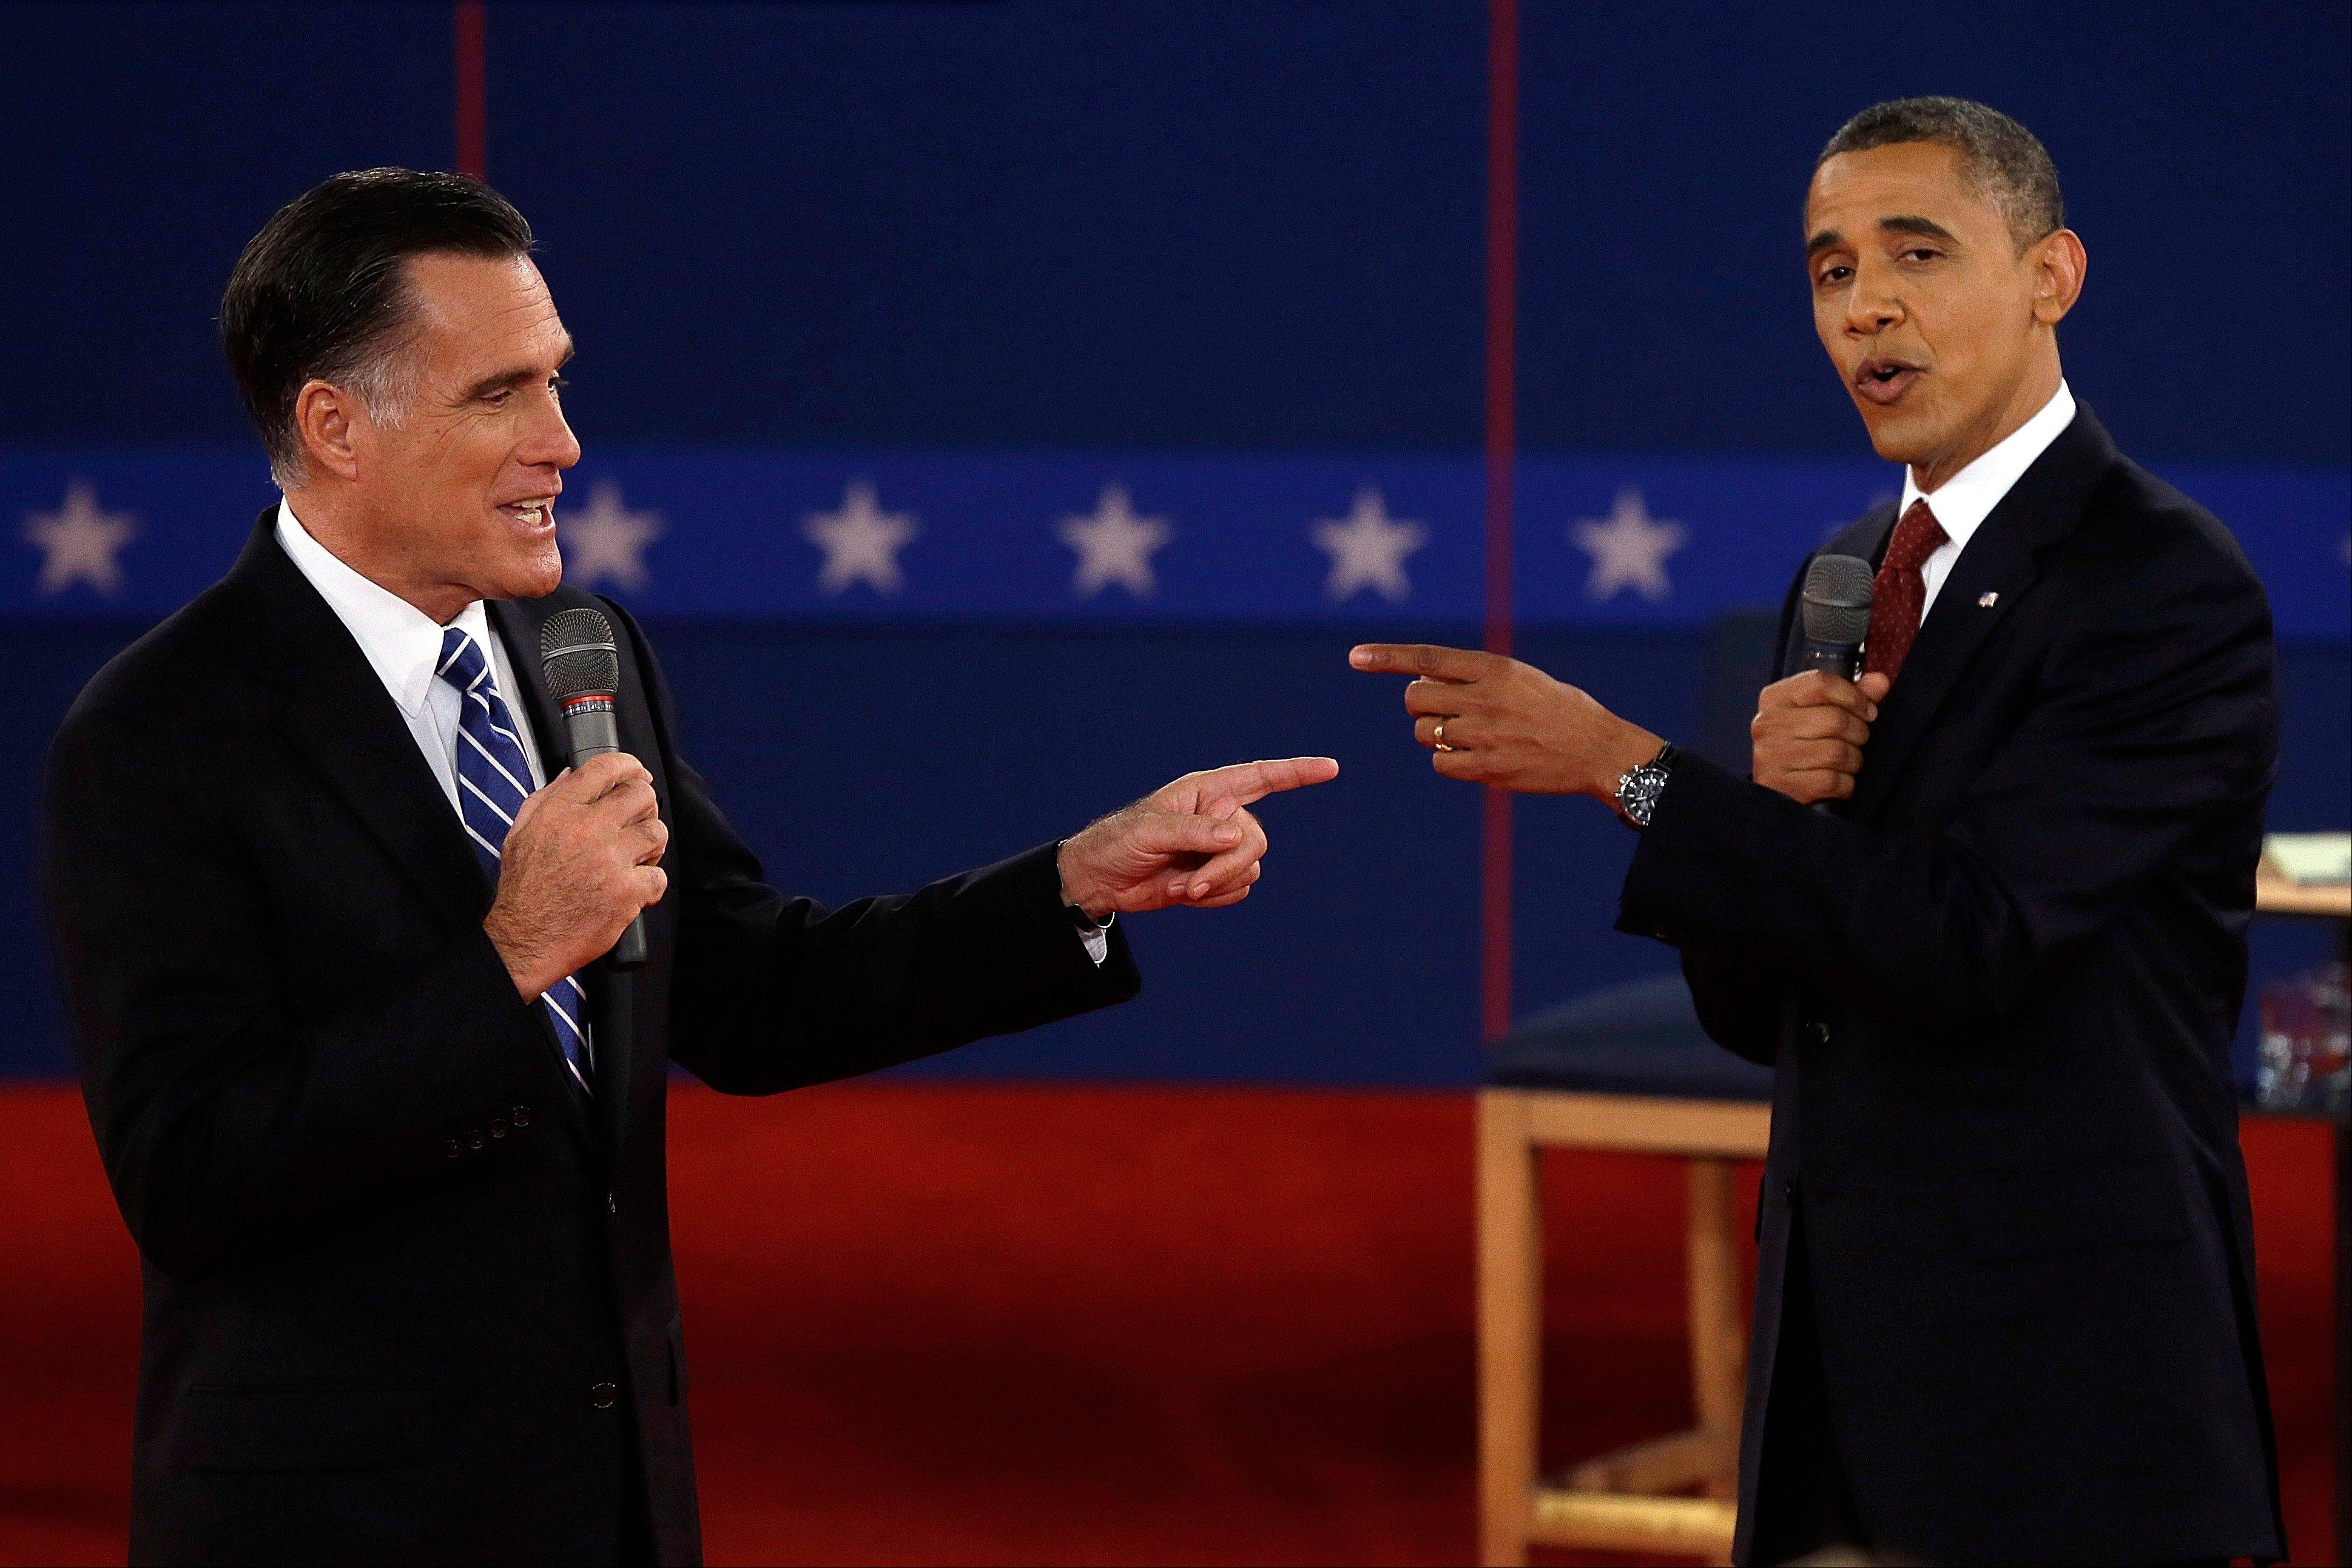 Republican presidential nominee Mitt Romney, left, and President Barack Obama spar during the second presidential debate at Hofstra University in Hempstead, N.Y.